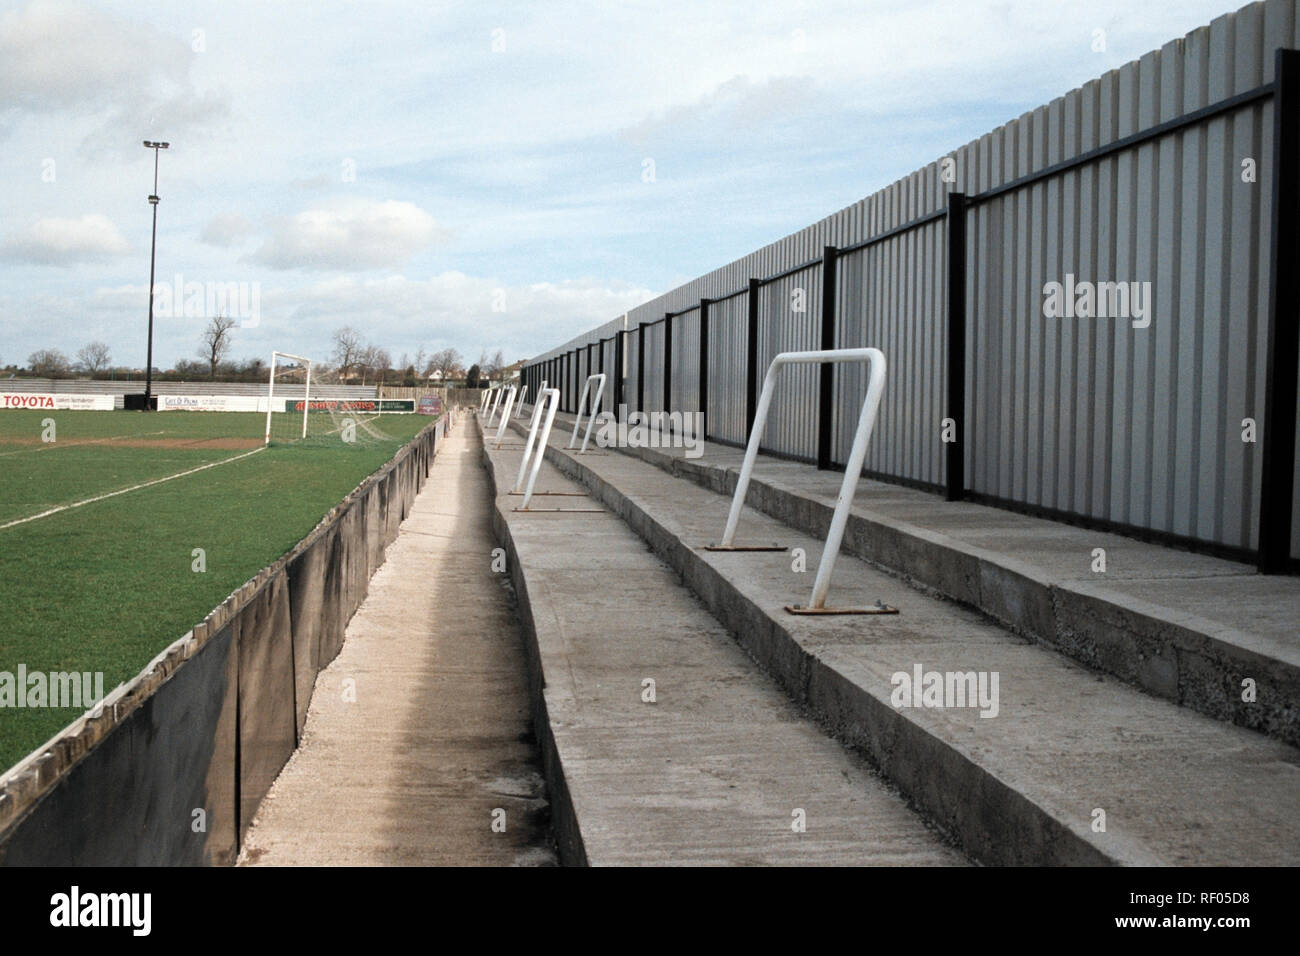 Terracing at Northallerton Town FC Football Ground, Ainderby Road, Romanby, Northallerton, North Yorkshire, pictured on 2nd April 1994 Stock Photo